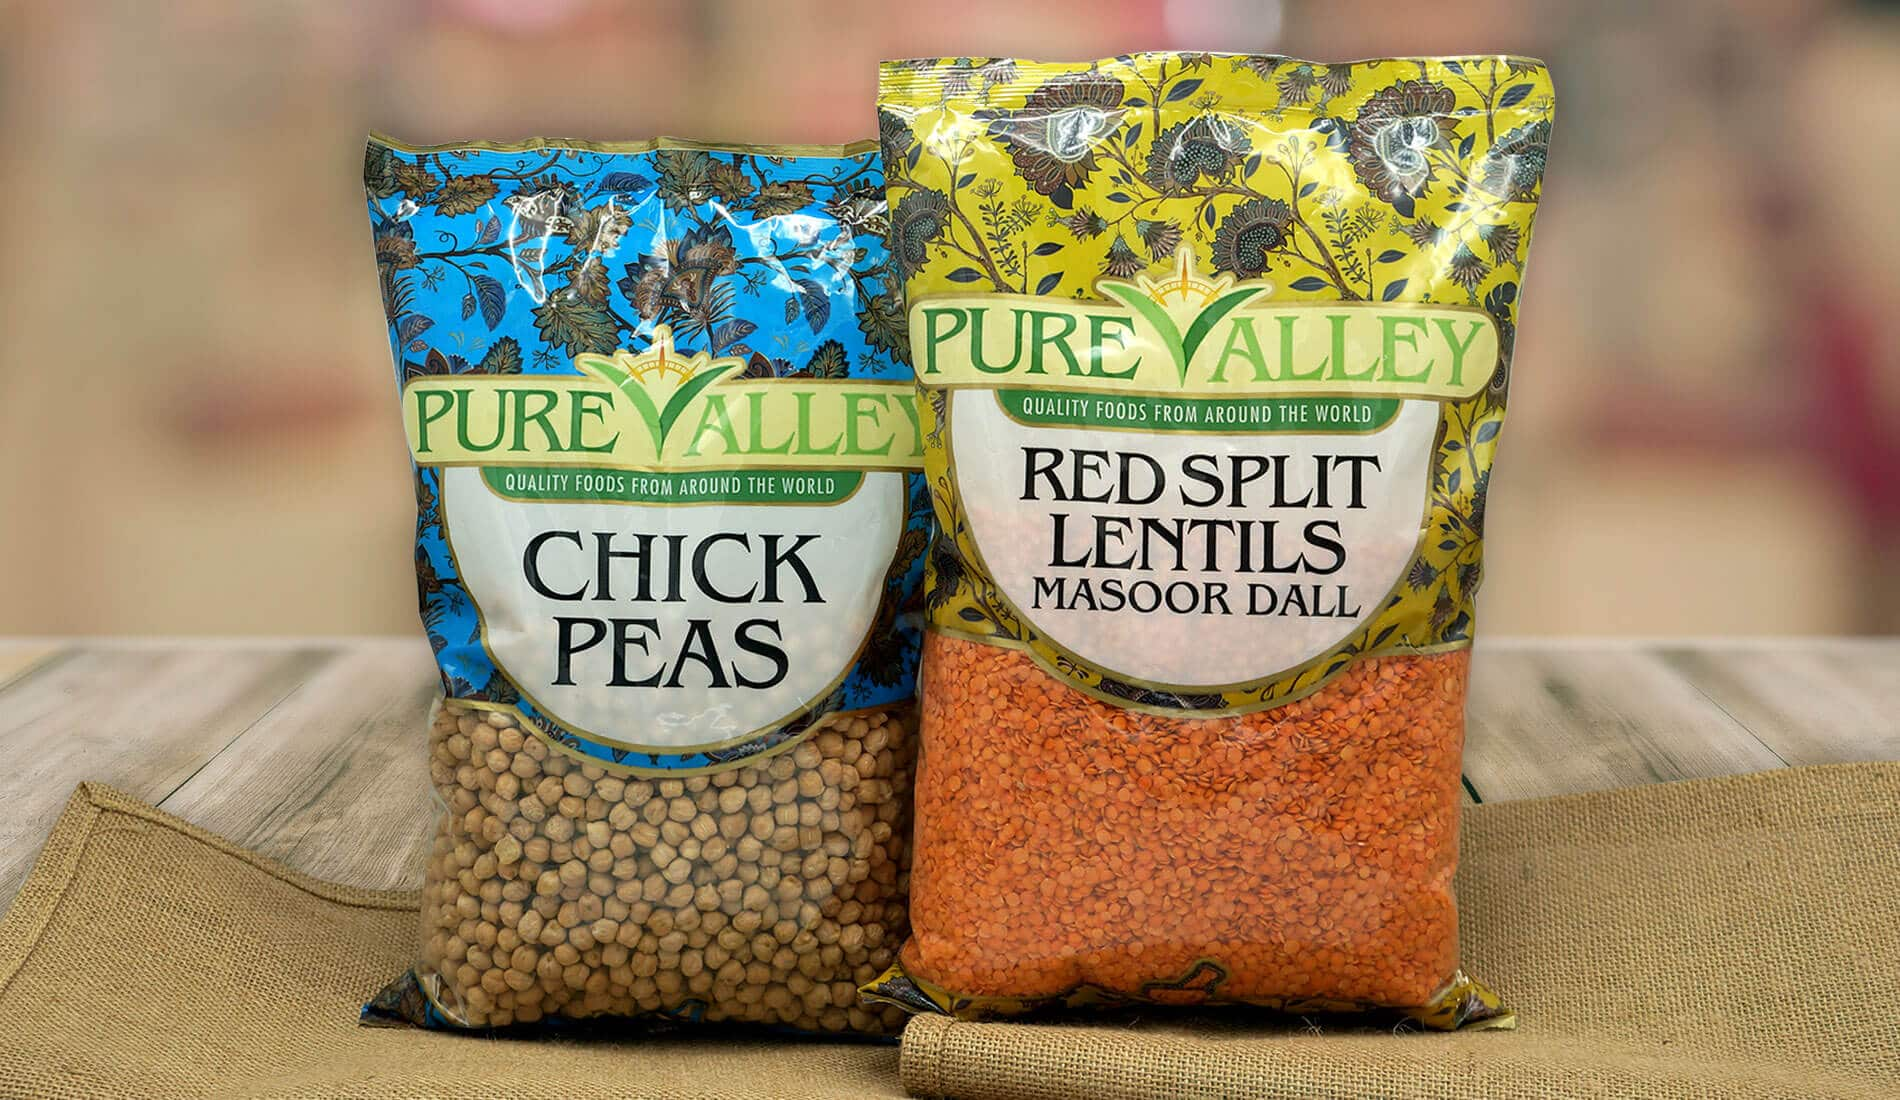 Designing brand identity and packaging for pure valley foods